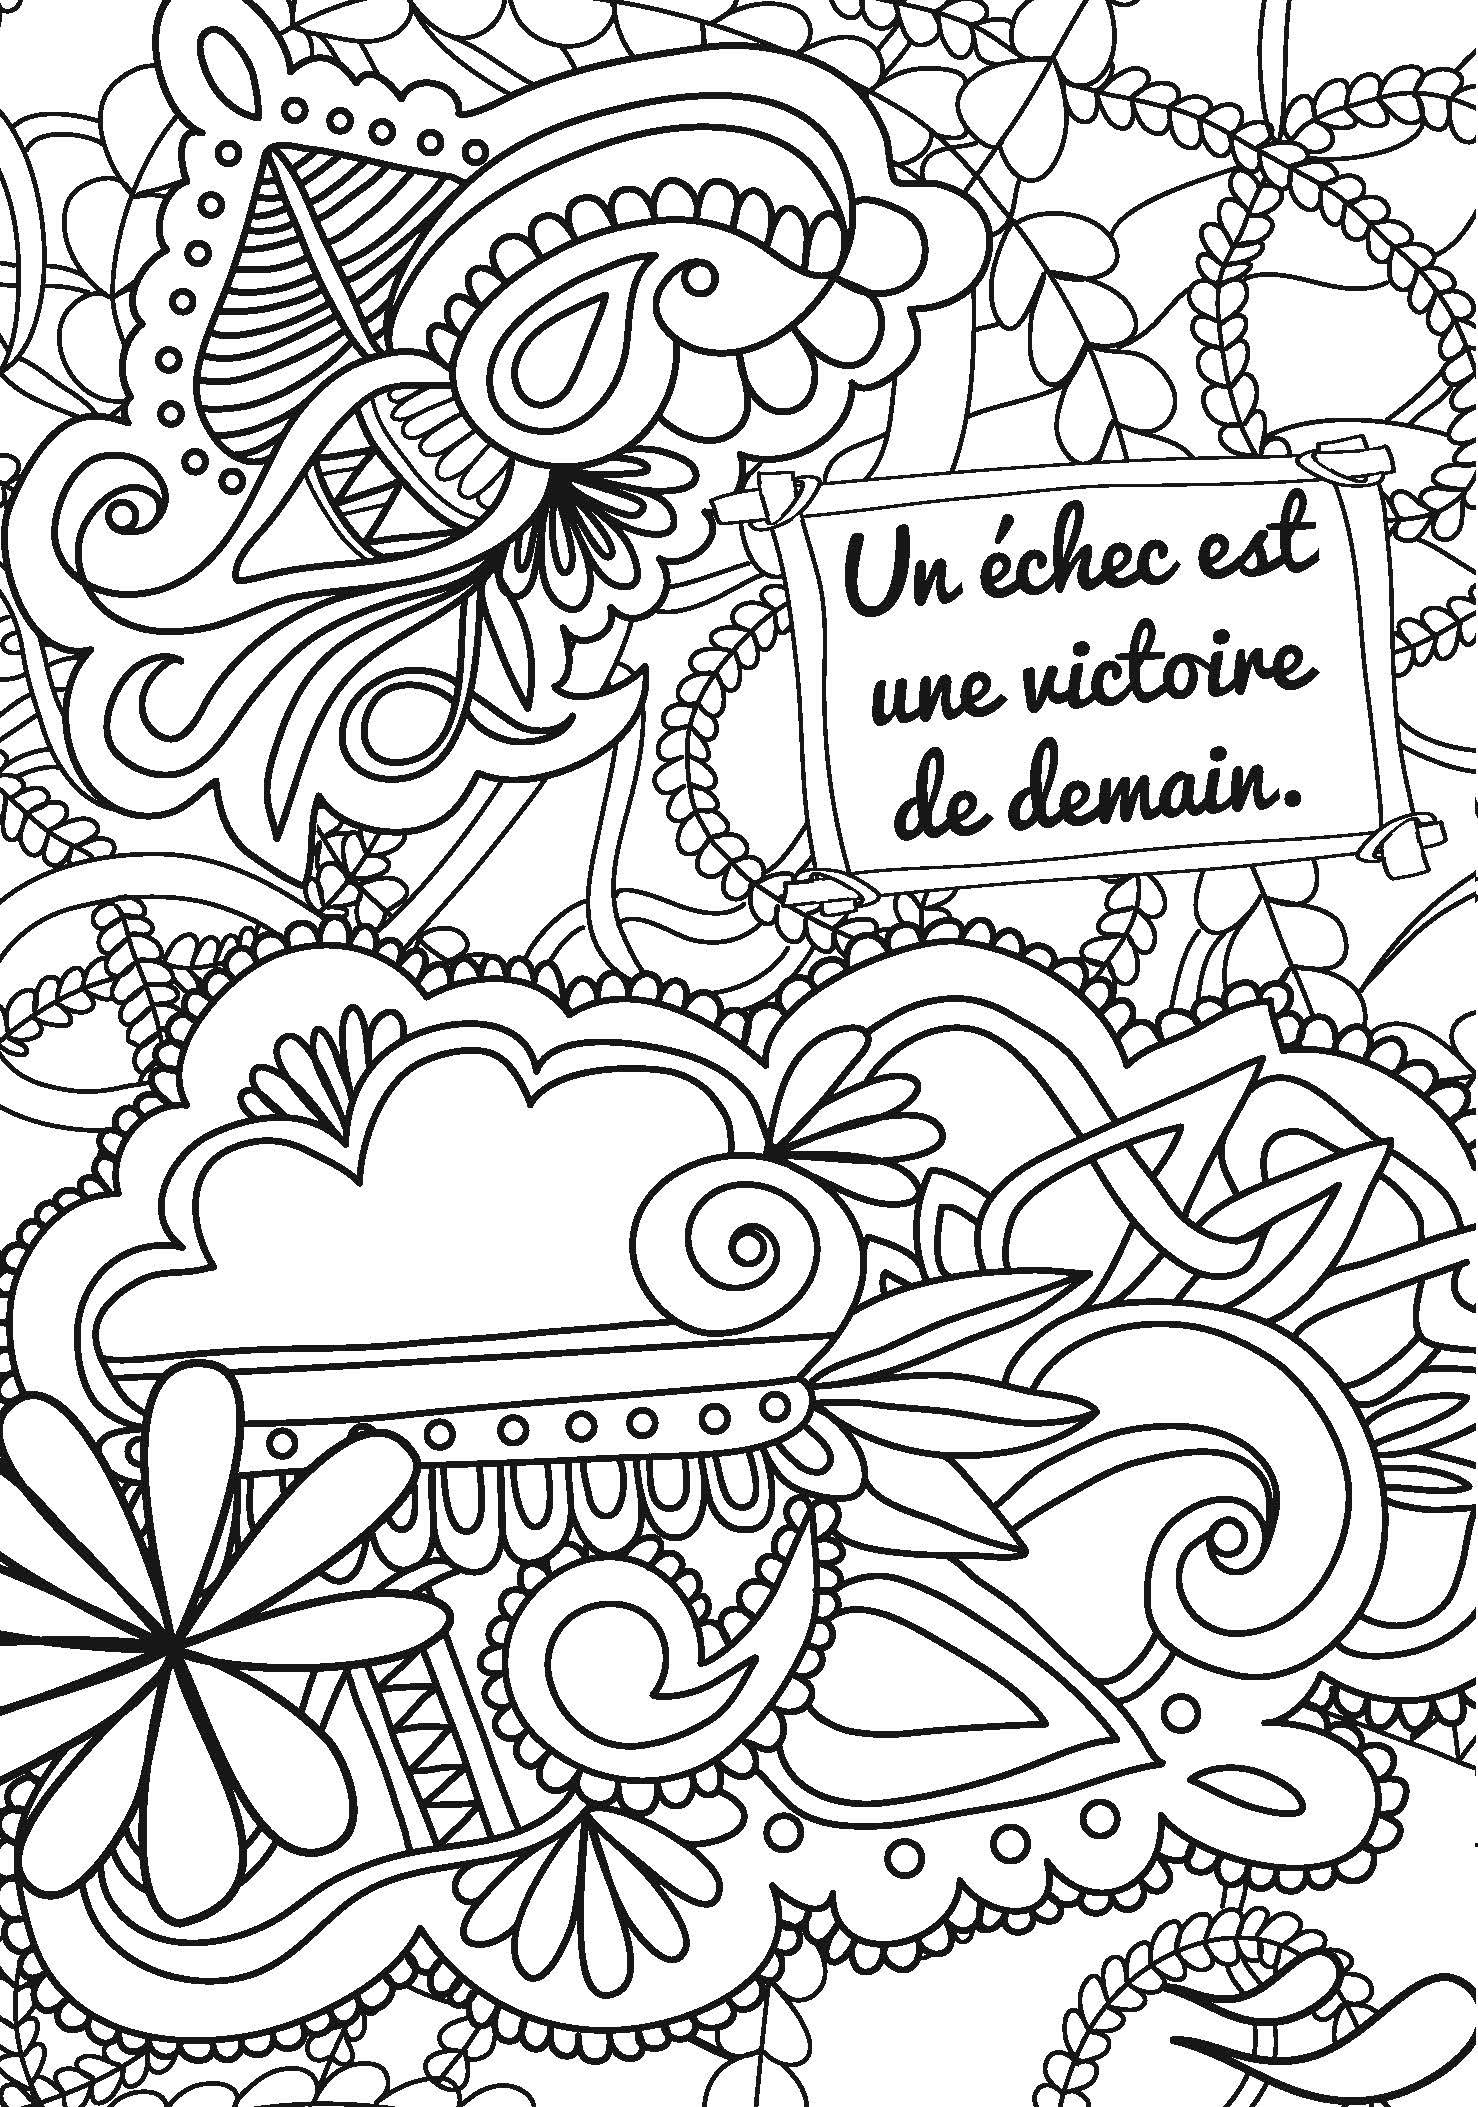 Coloriage anti stress avec citation - Image anti stress ...